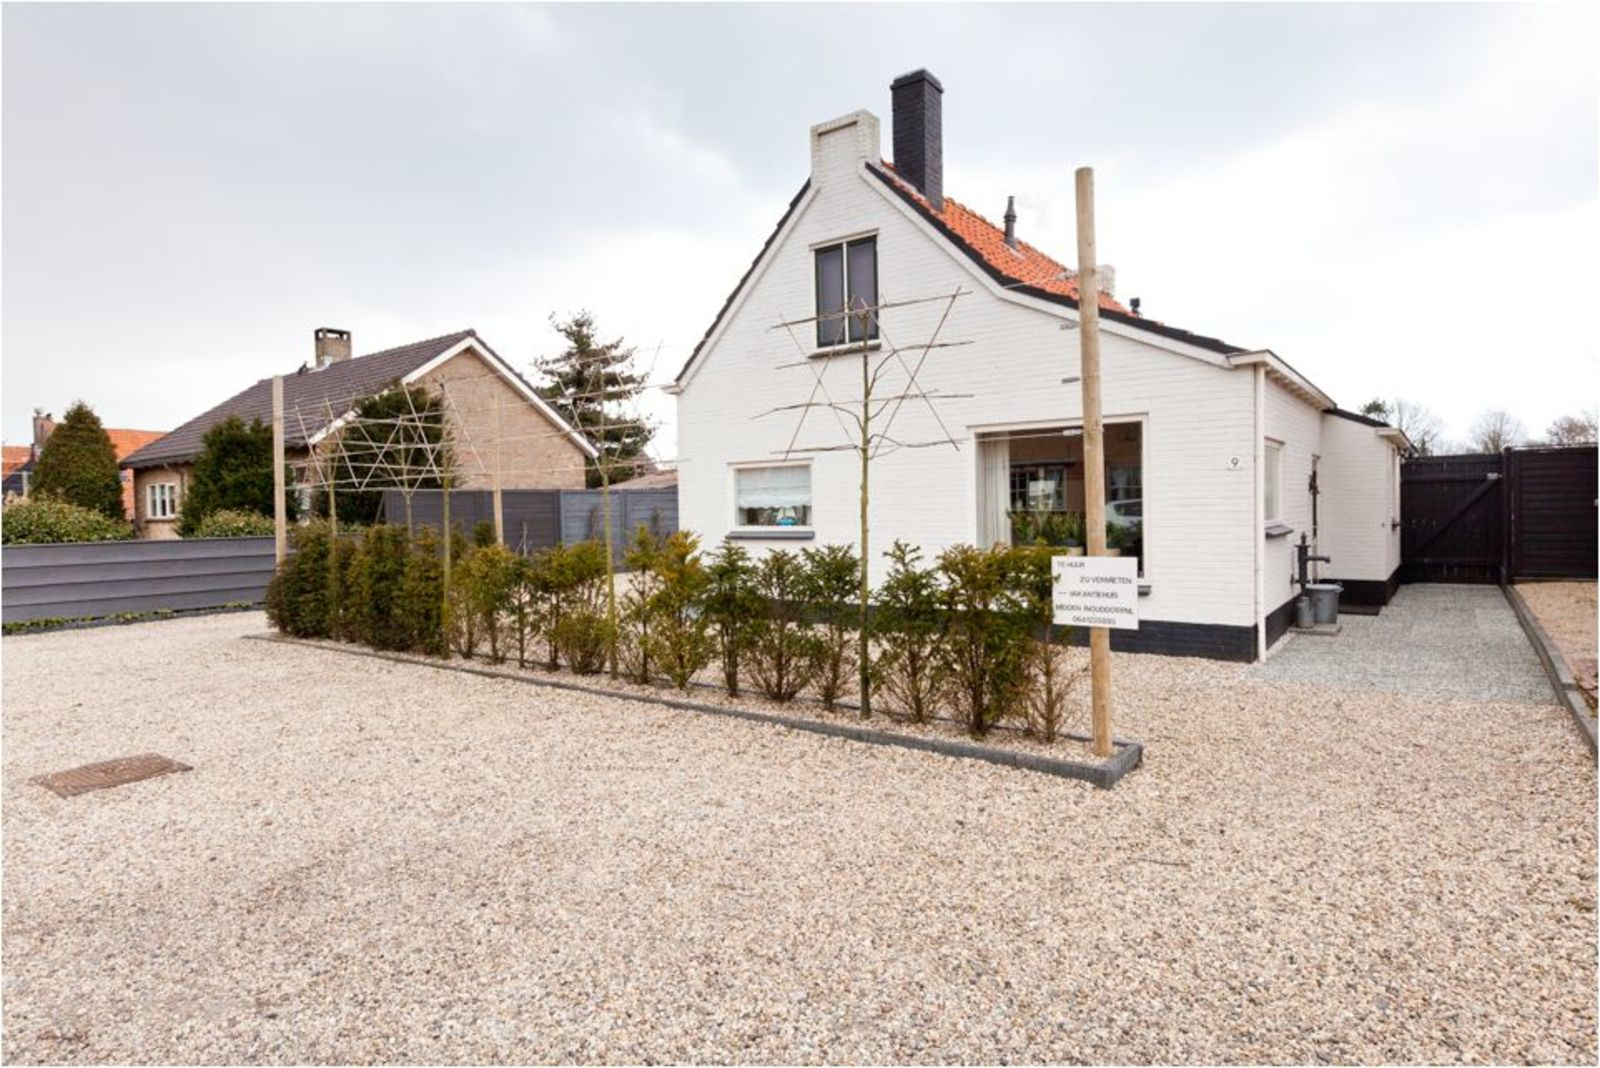 Vacation home Midden in Ouddorp (6 persons) - Ouddorp